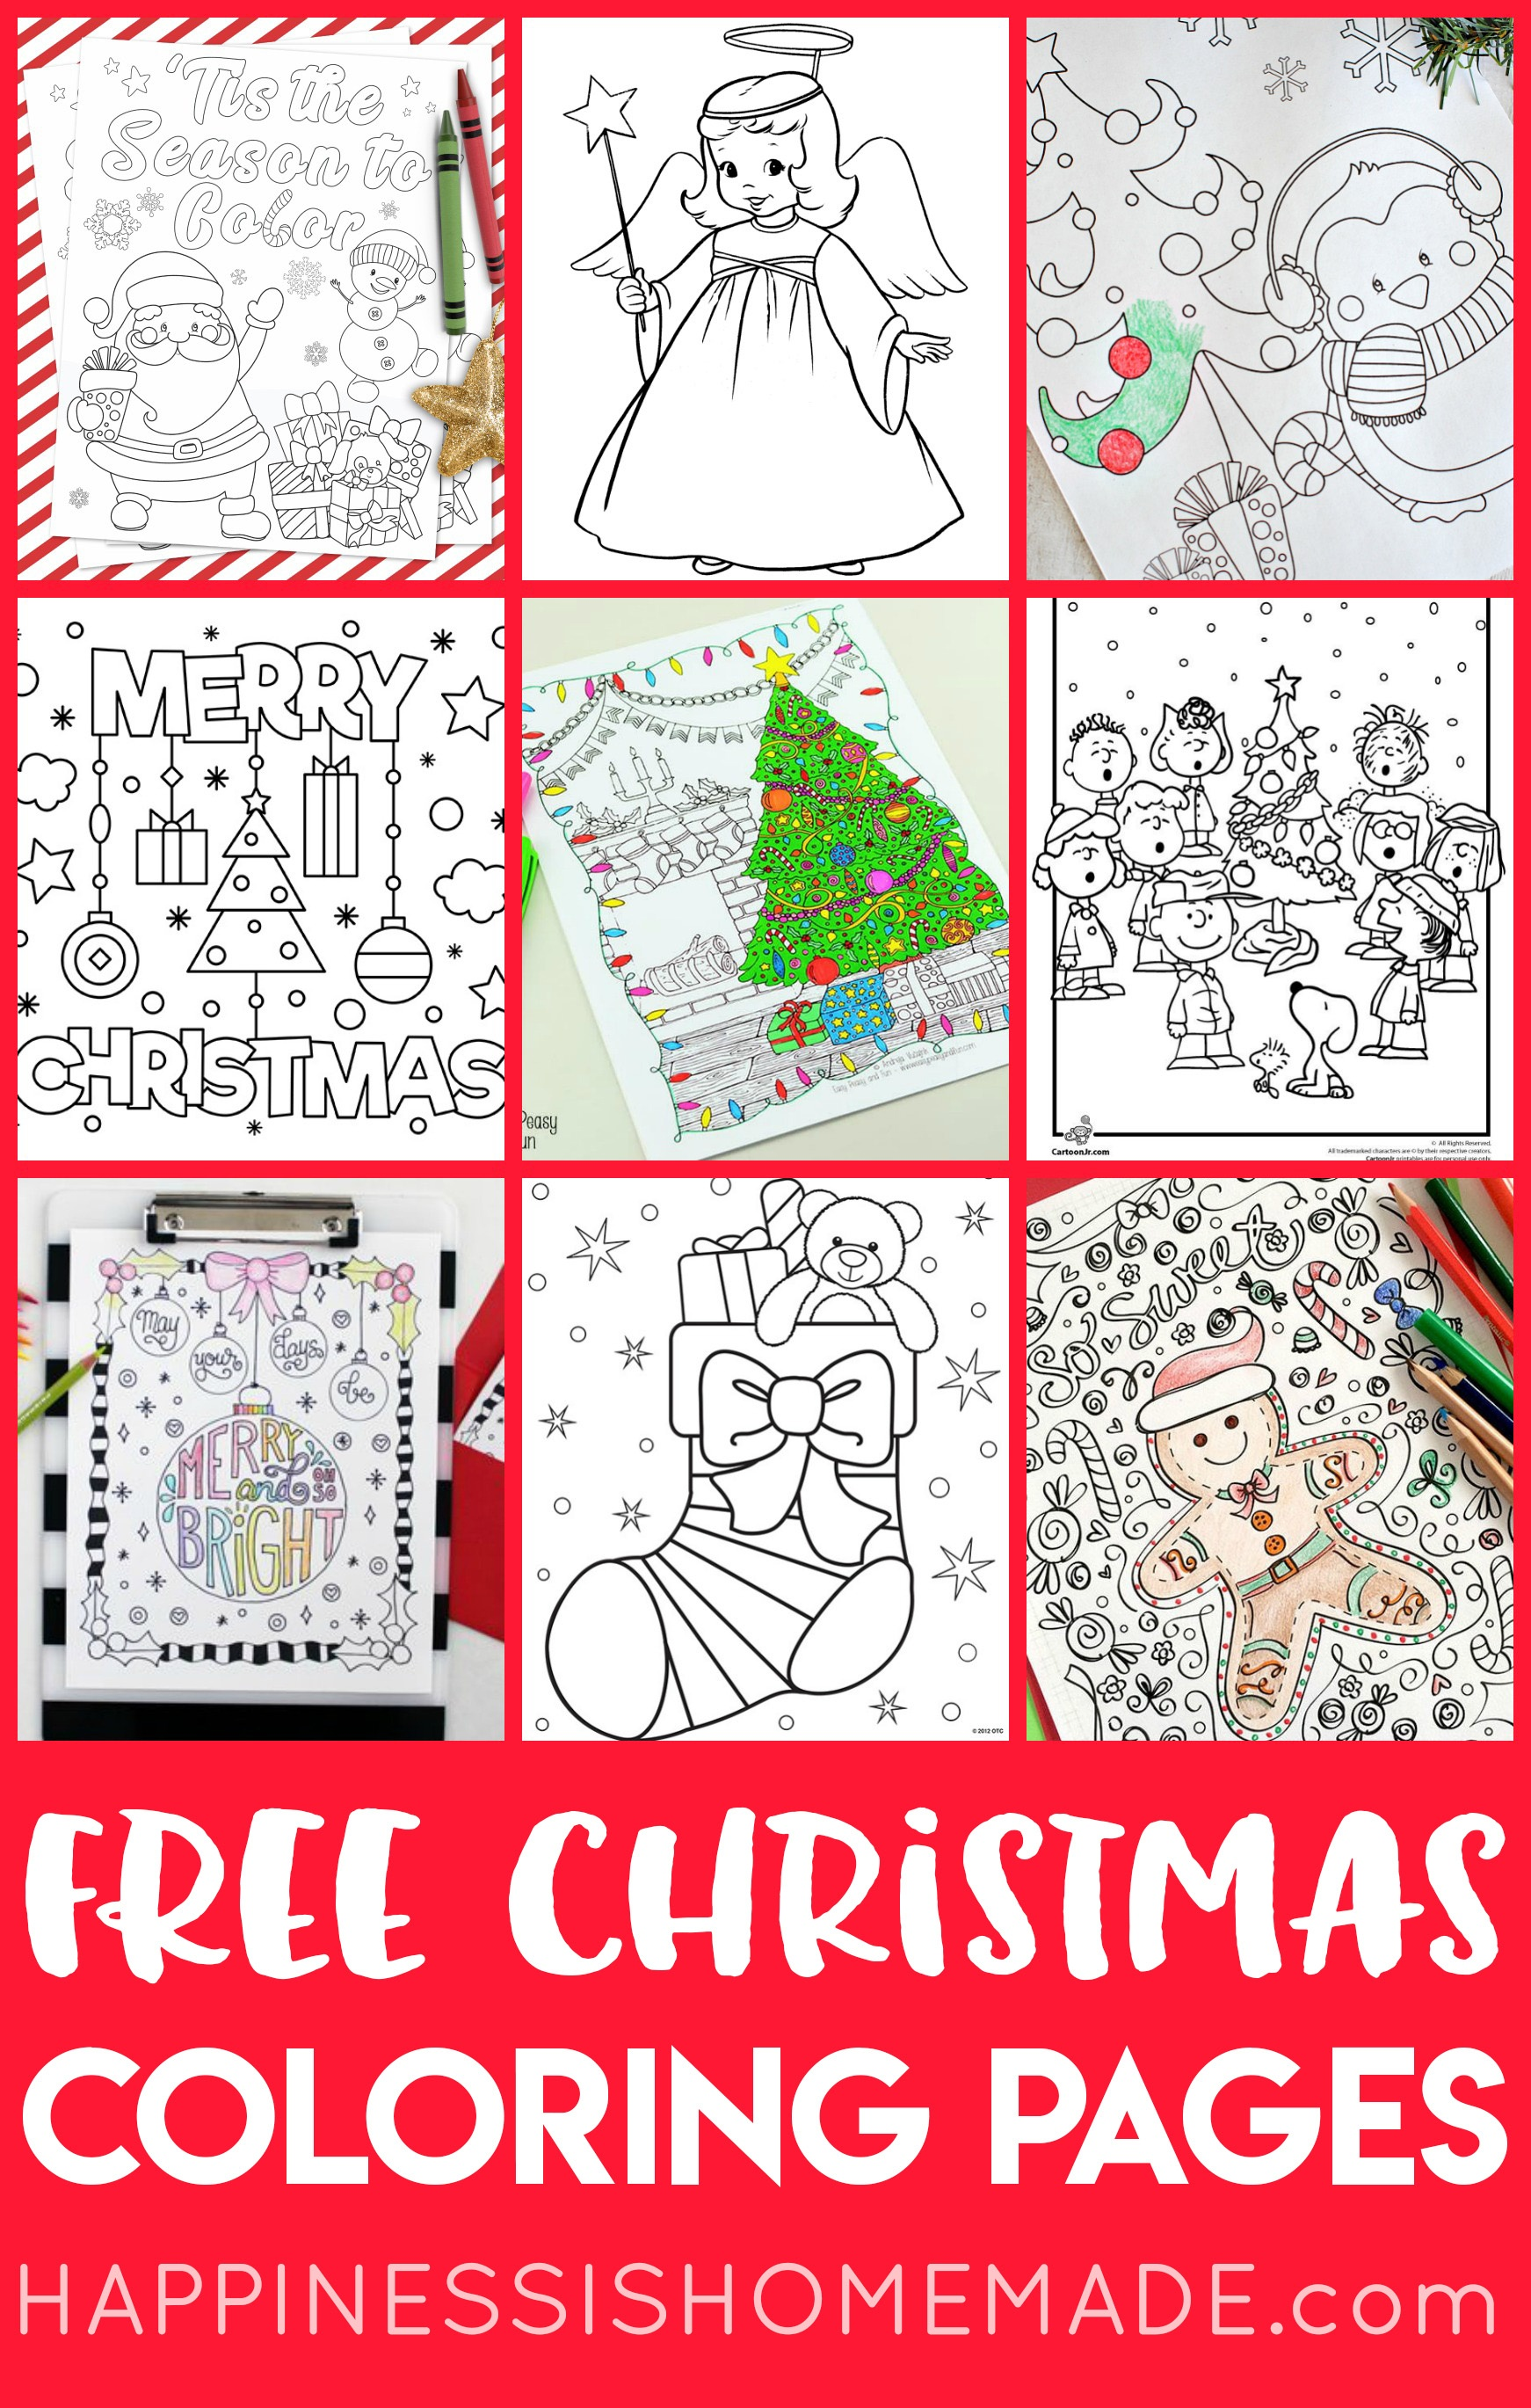 Easy Christmas Kids Crafts That Anyone Can Make! - Happiness Is Homemade - Free Printable Christmas Ornament Crafts